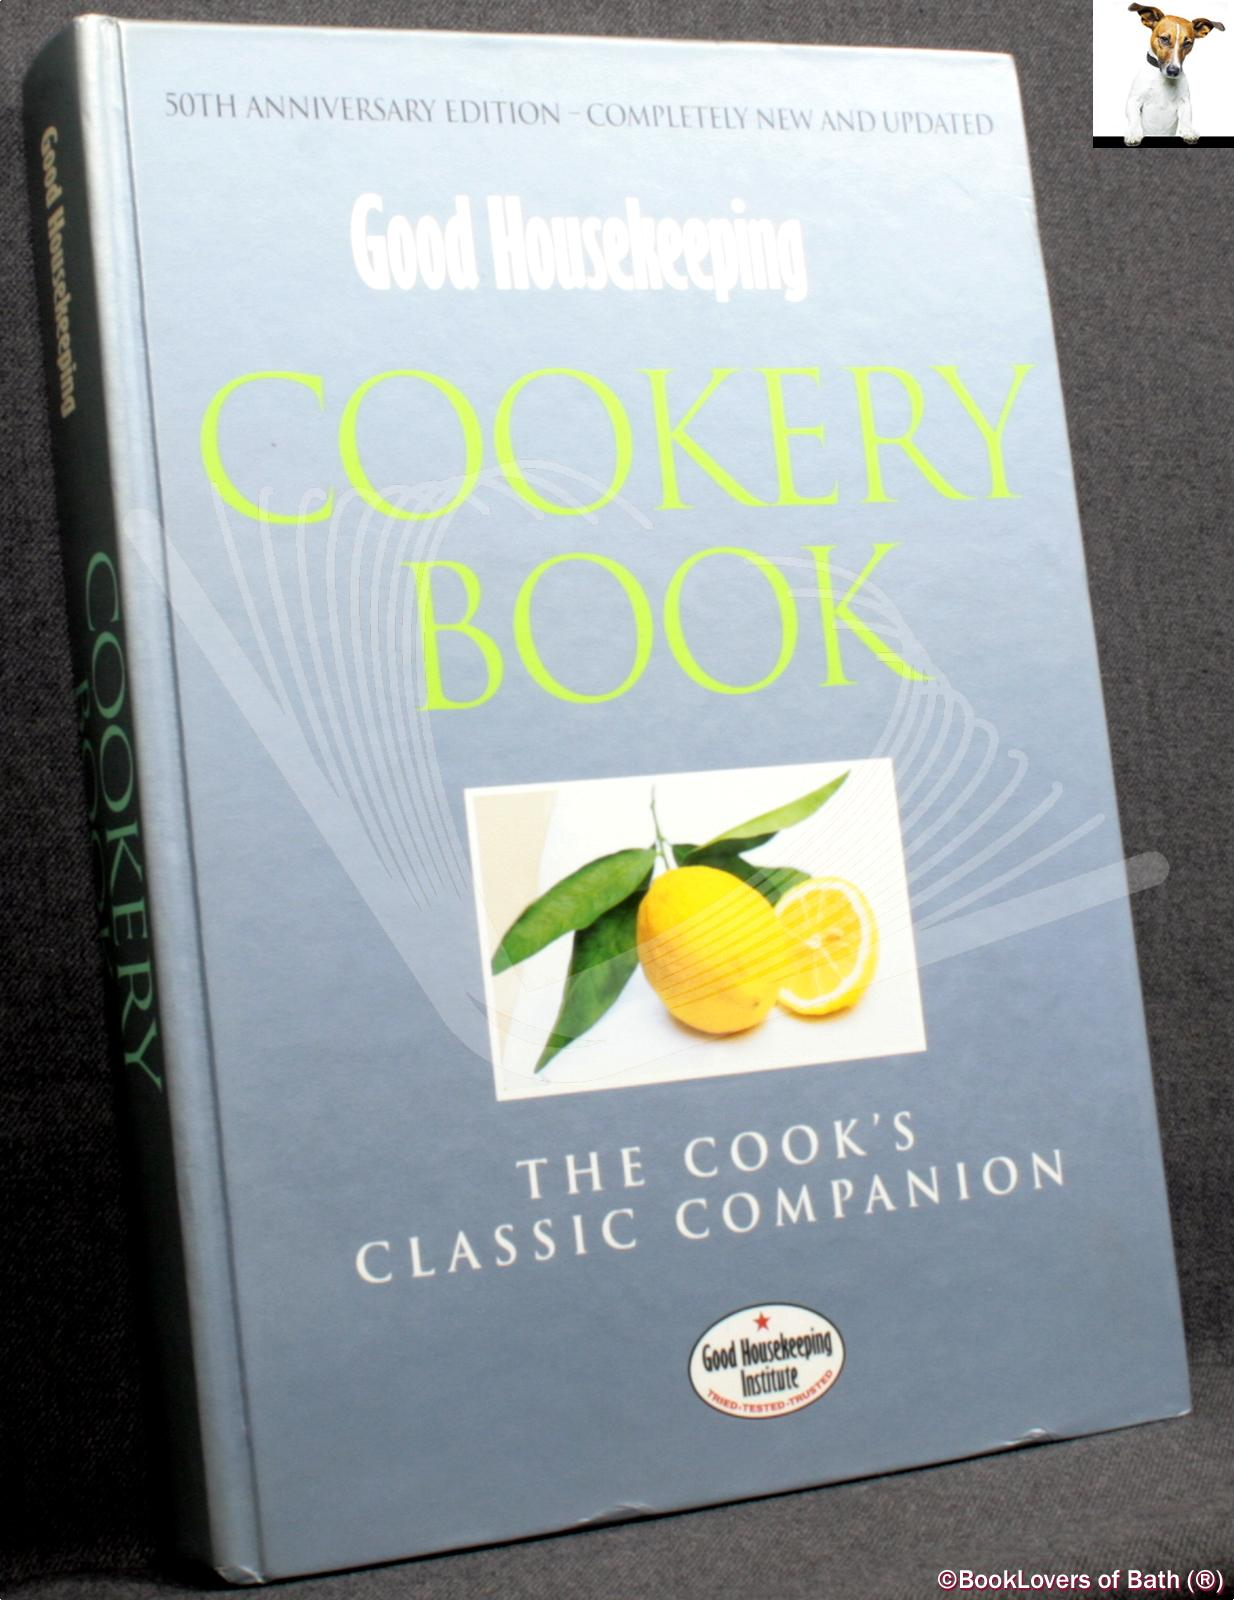 Good Housekeeping Cookery Book: The Cook's Classic Companion - Anon